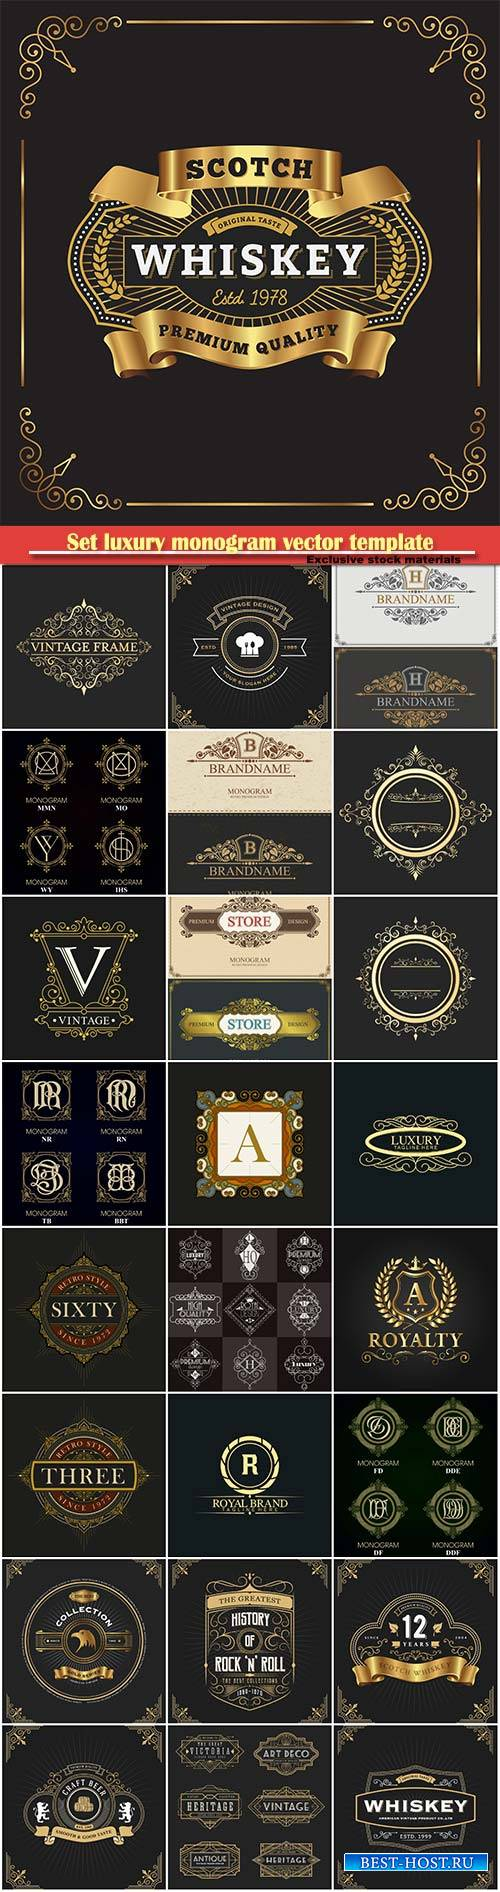 Set luxury monogram vector template, logos, badges, symbols # 13